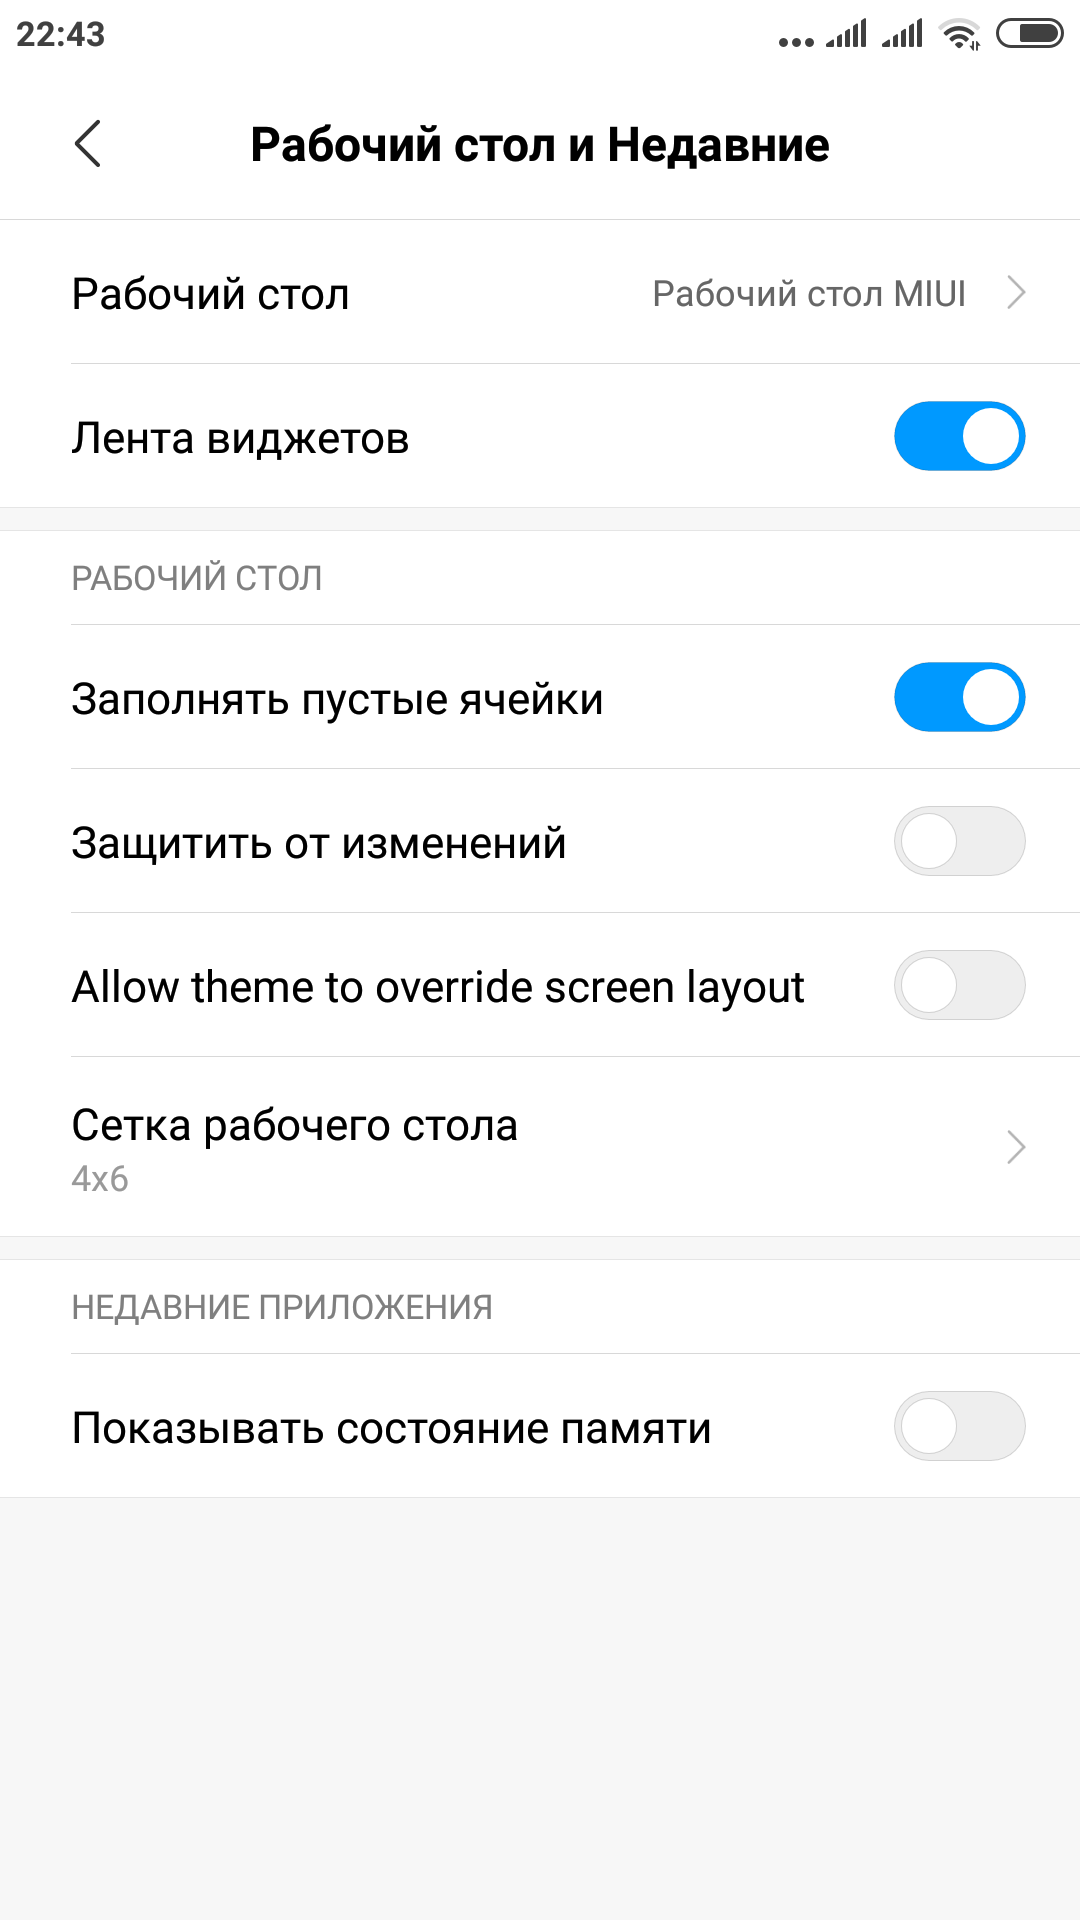 Screenshot_2018-12-18-22-43-14-160_com.miui.home.png